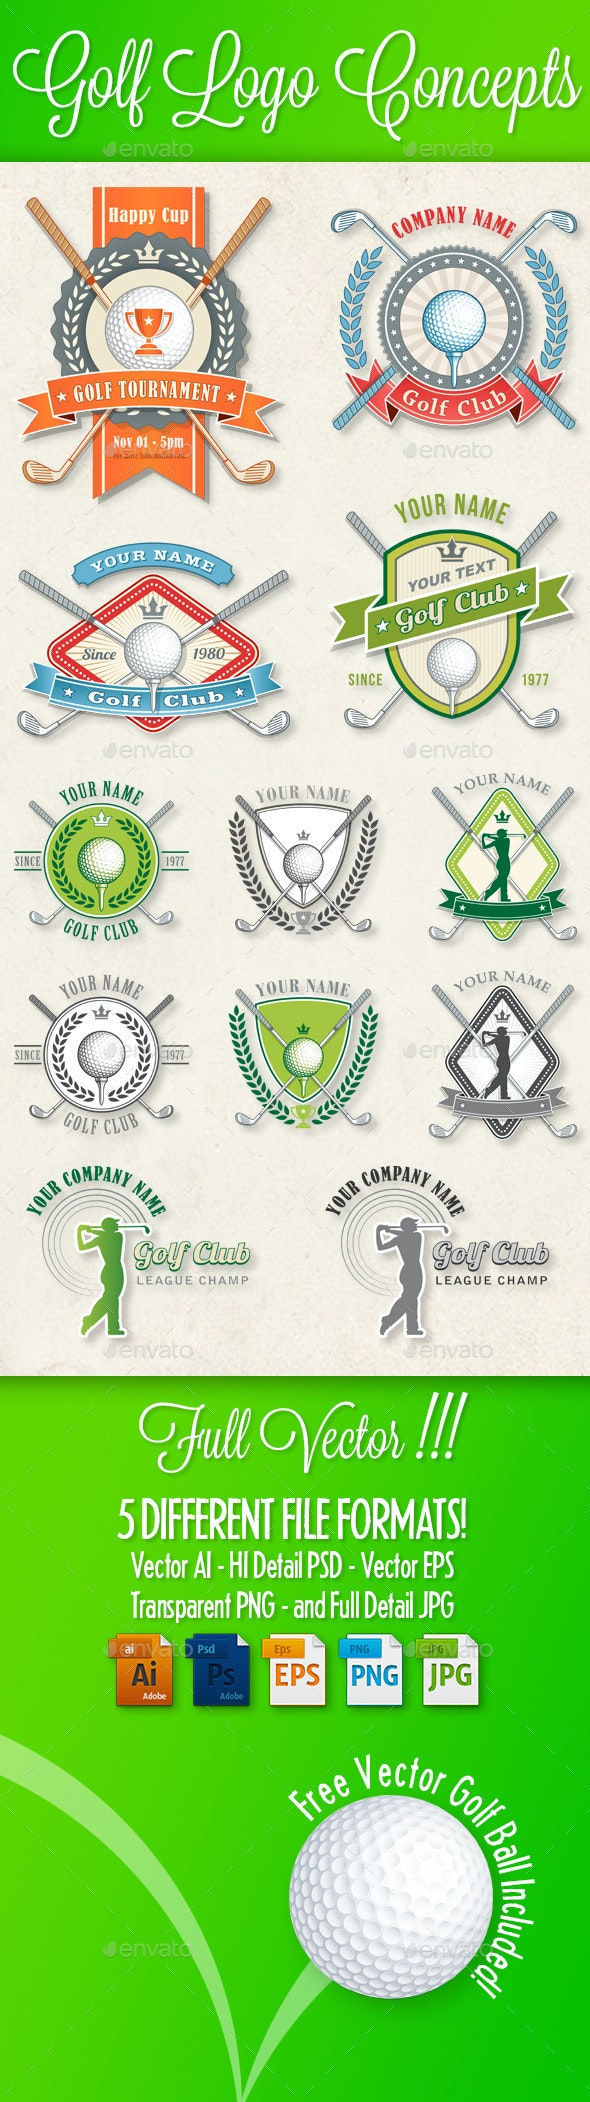 Golf Logos and Concepts - Sports/Activity Conceptual